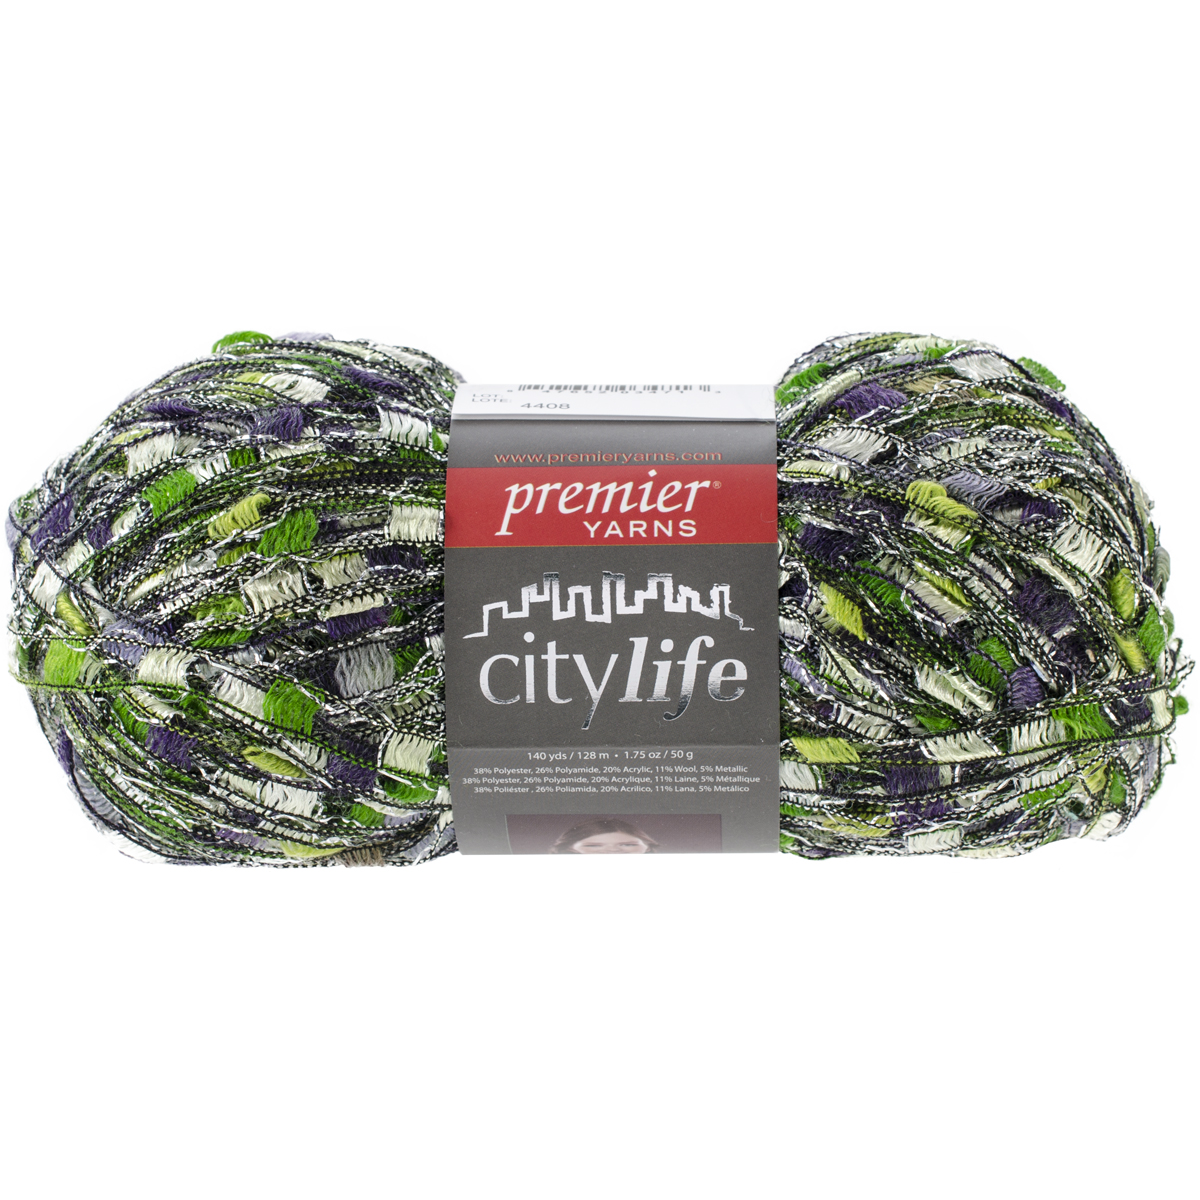 Premier Yarns City Life Ladder Yarn, Grapevine Multi-Colored